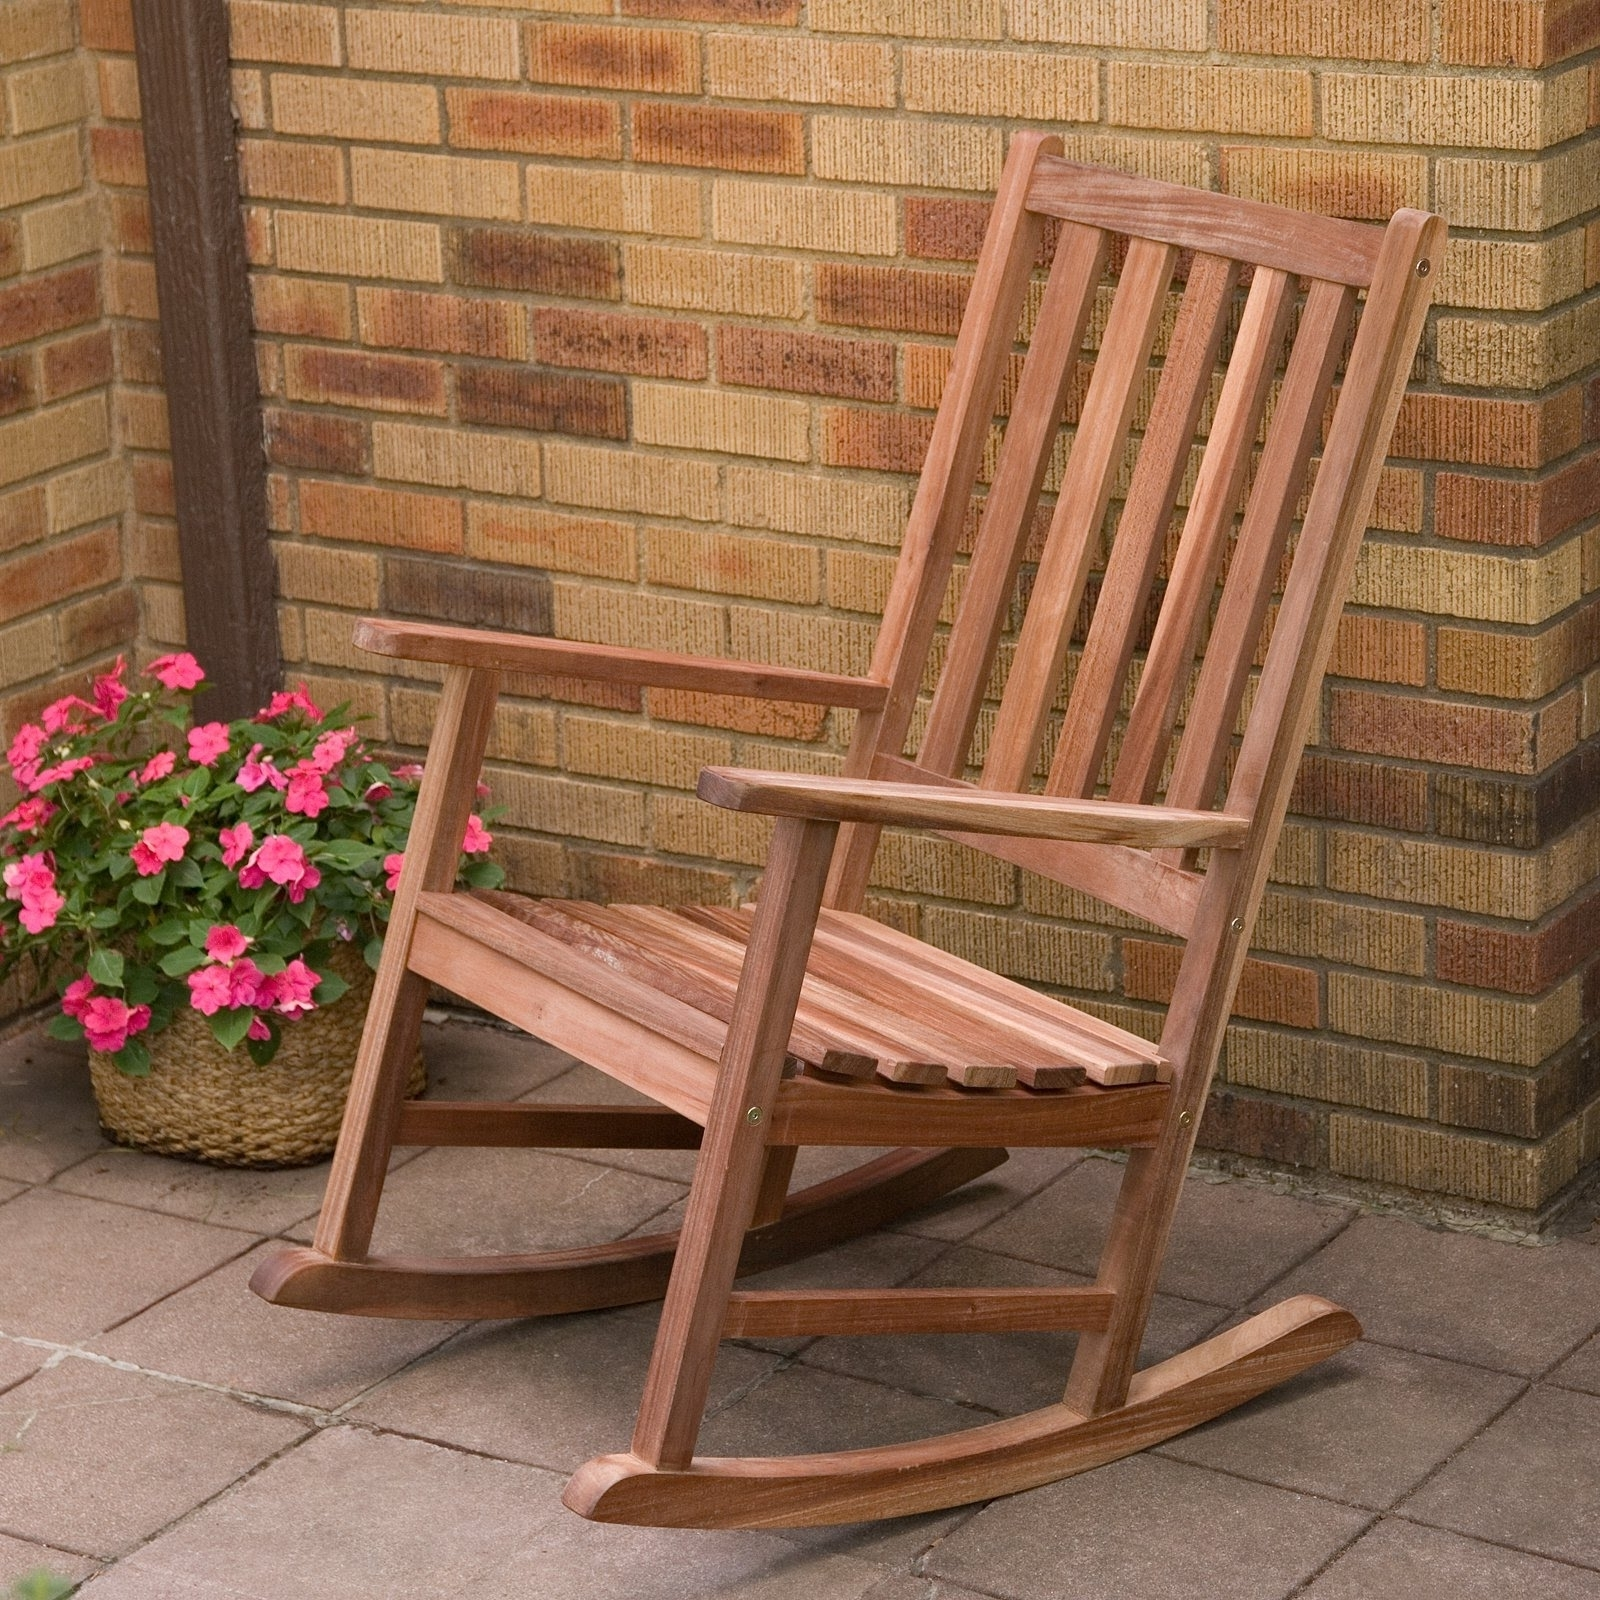 Retro Outdoor Rocking Chairs Pertaining To Most Popular Patio & Garden : Eucalyptus Outdoor Rocking Chair Espresso Outdoor (View 18 of 20)